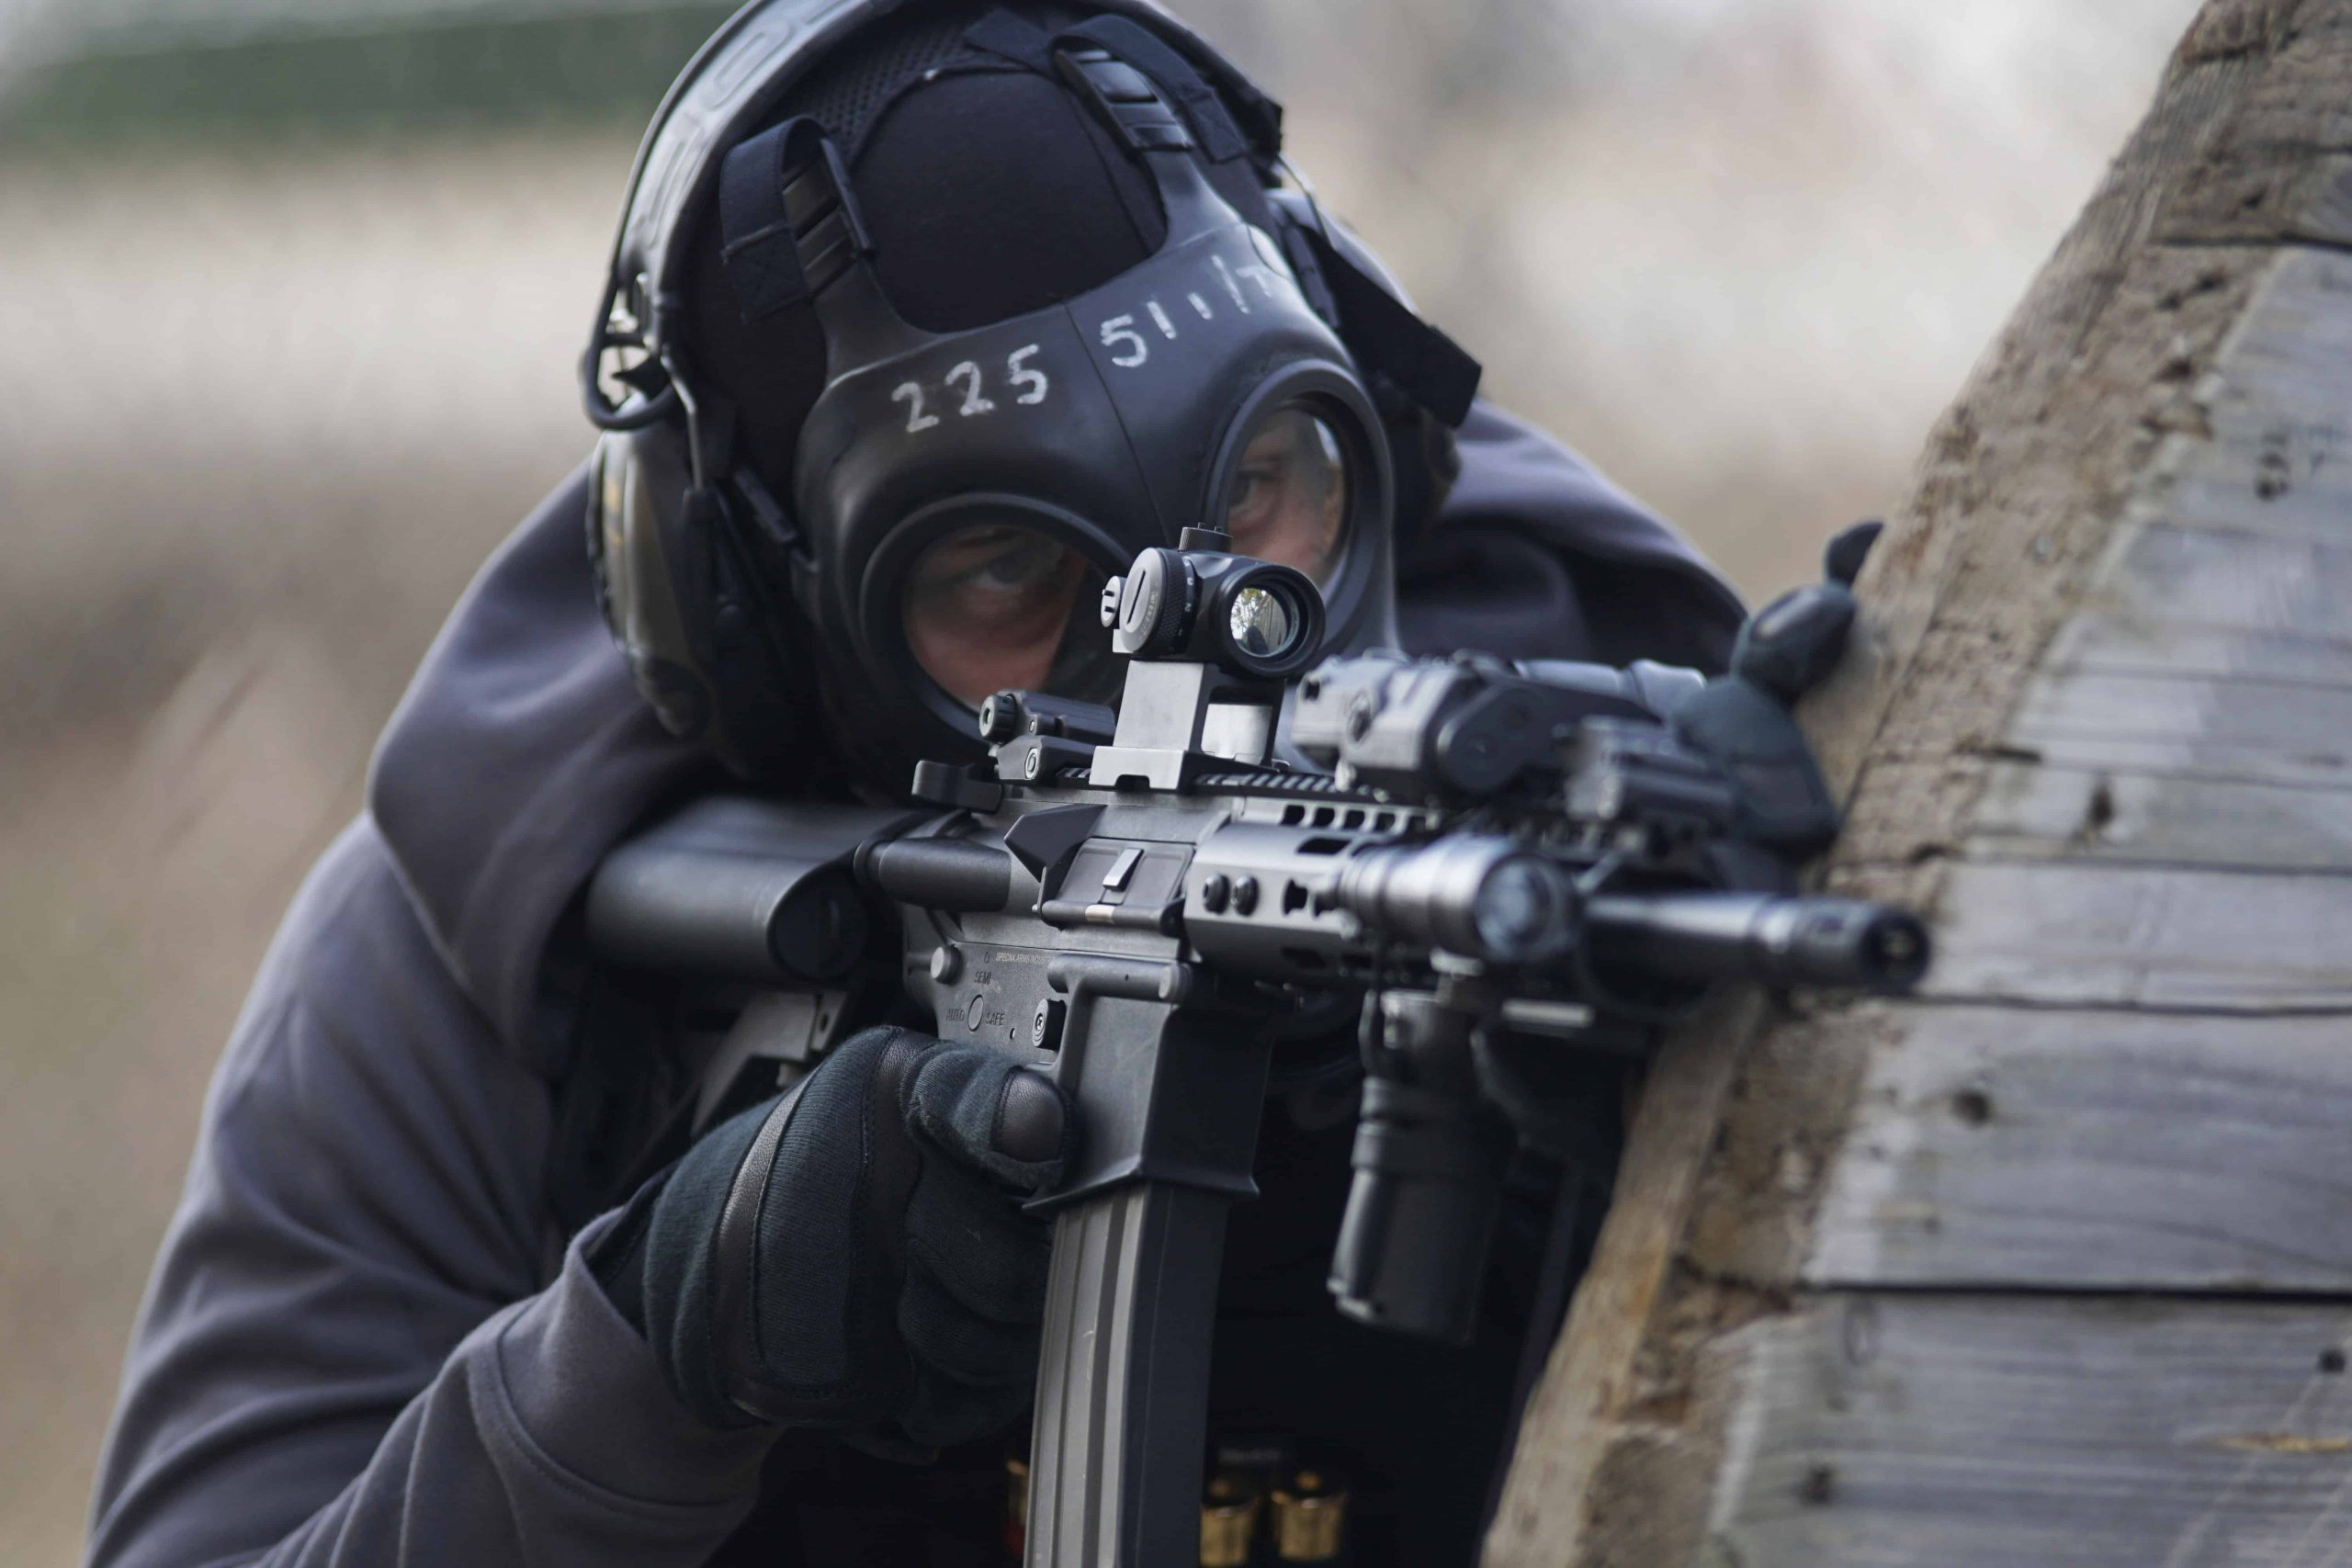 Firearms Training Using Airsoft